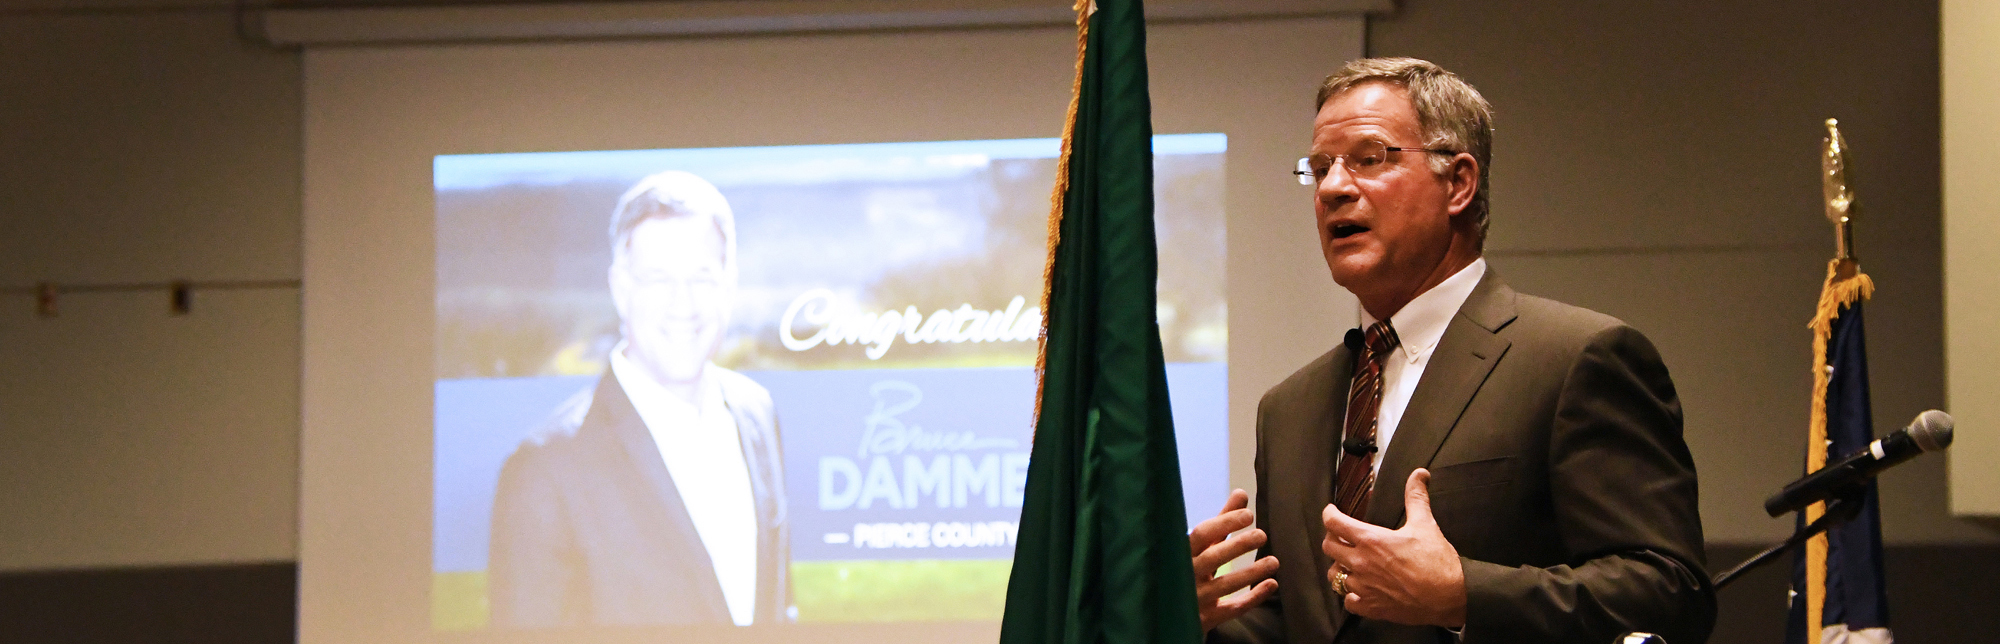 Pierce County Executive Bruce Dammeier